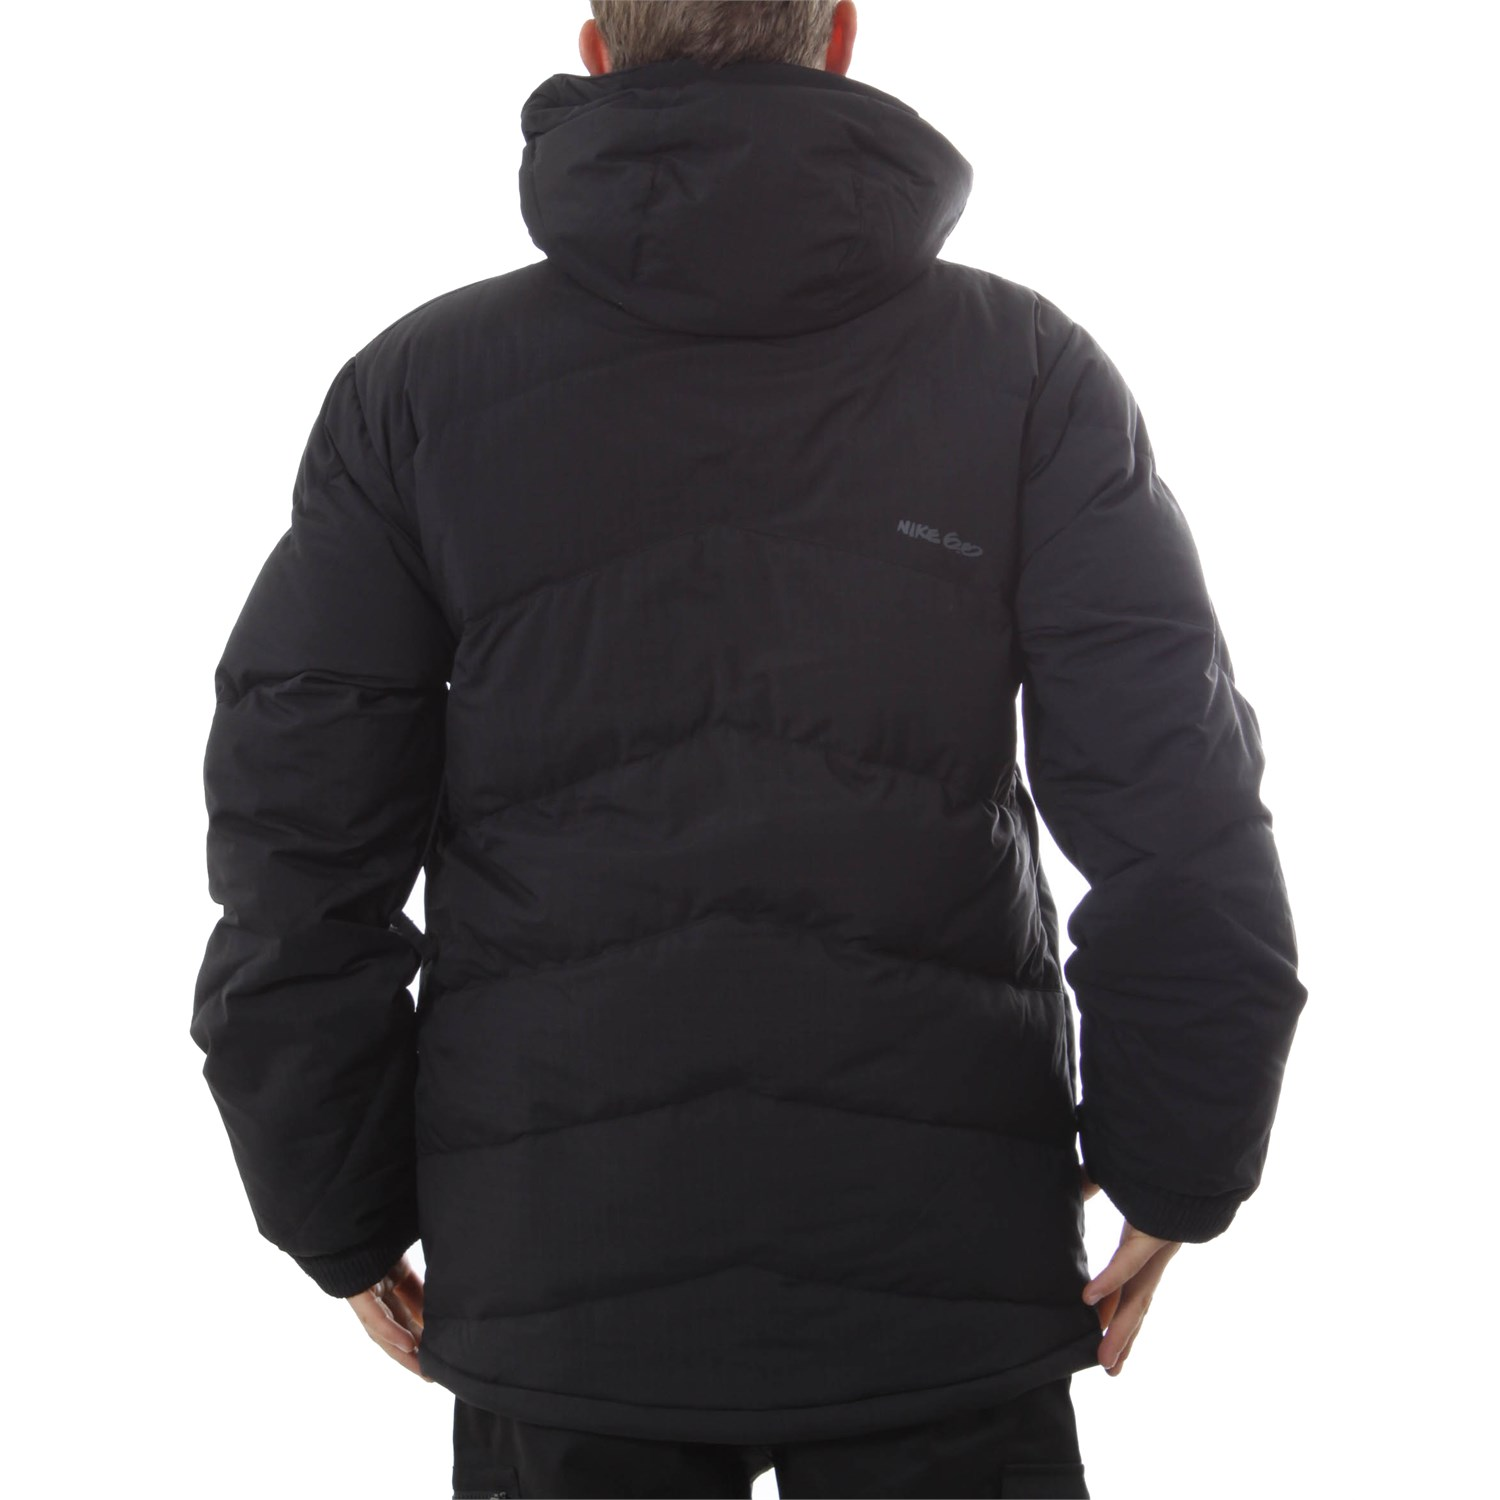 2392caa126b6 Nike 6.0 Proost Down Jacket